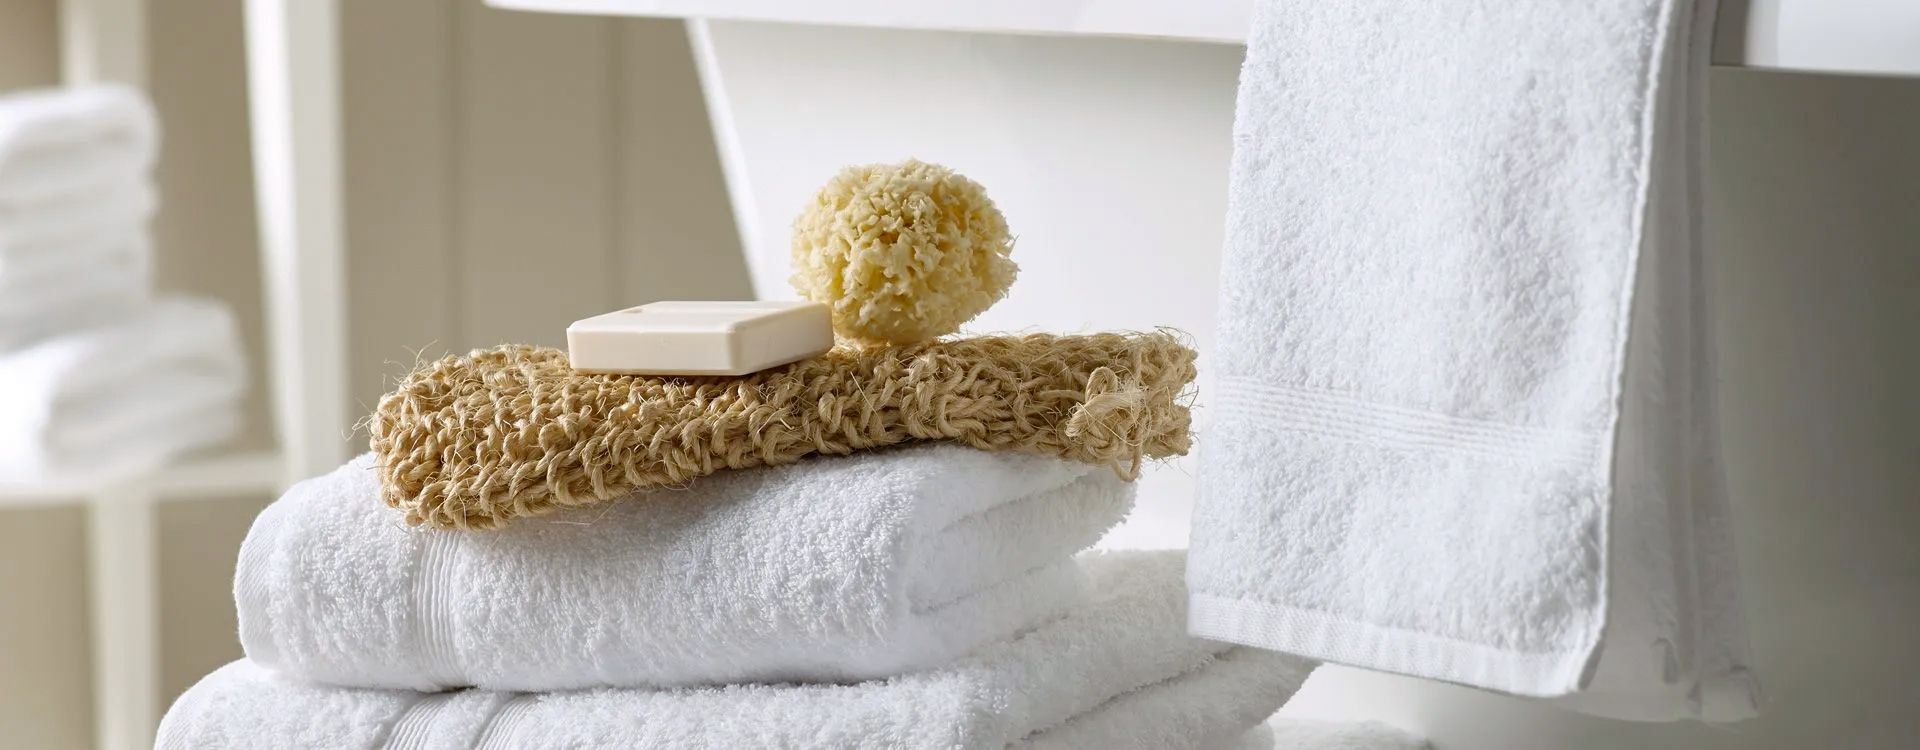 Bath Linen You Can Rely On